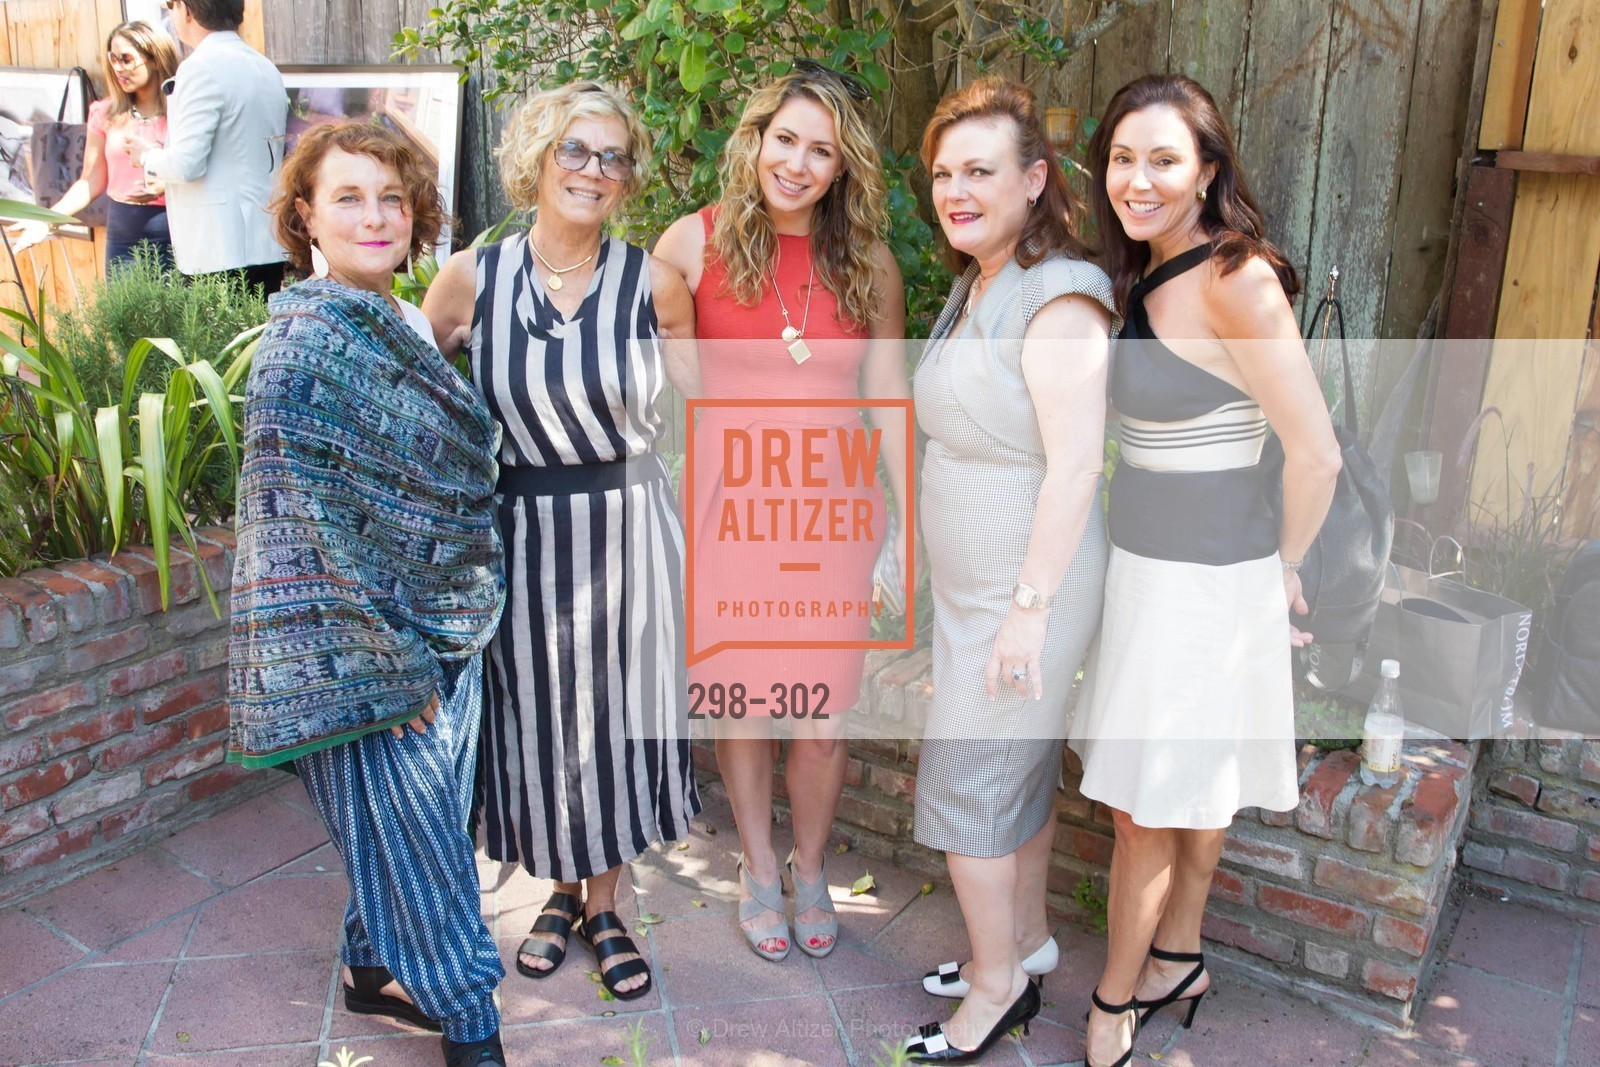 Shelly Handler, Nancy Mayer, Natalie Hicks, Jennifer Raiser, Maybeth Lamotte, Rissetto launch honoring Jennifer Raiser & Sukey Forbes, Blanc. 3615 Sacramento SF, September 21st, 2015,Drew Altizer, Drew Altizer Photography, full-service event agency, private events, San Francisco photographer, photographer California